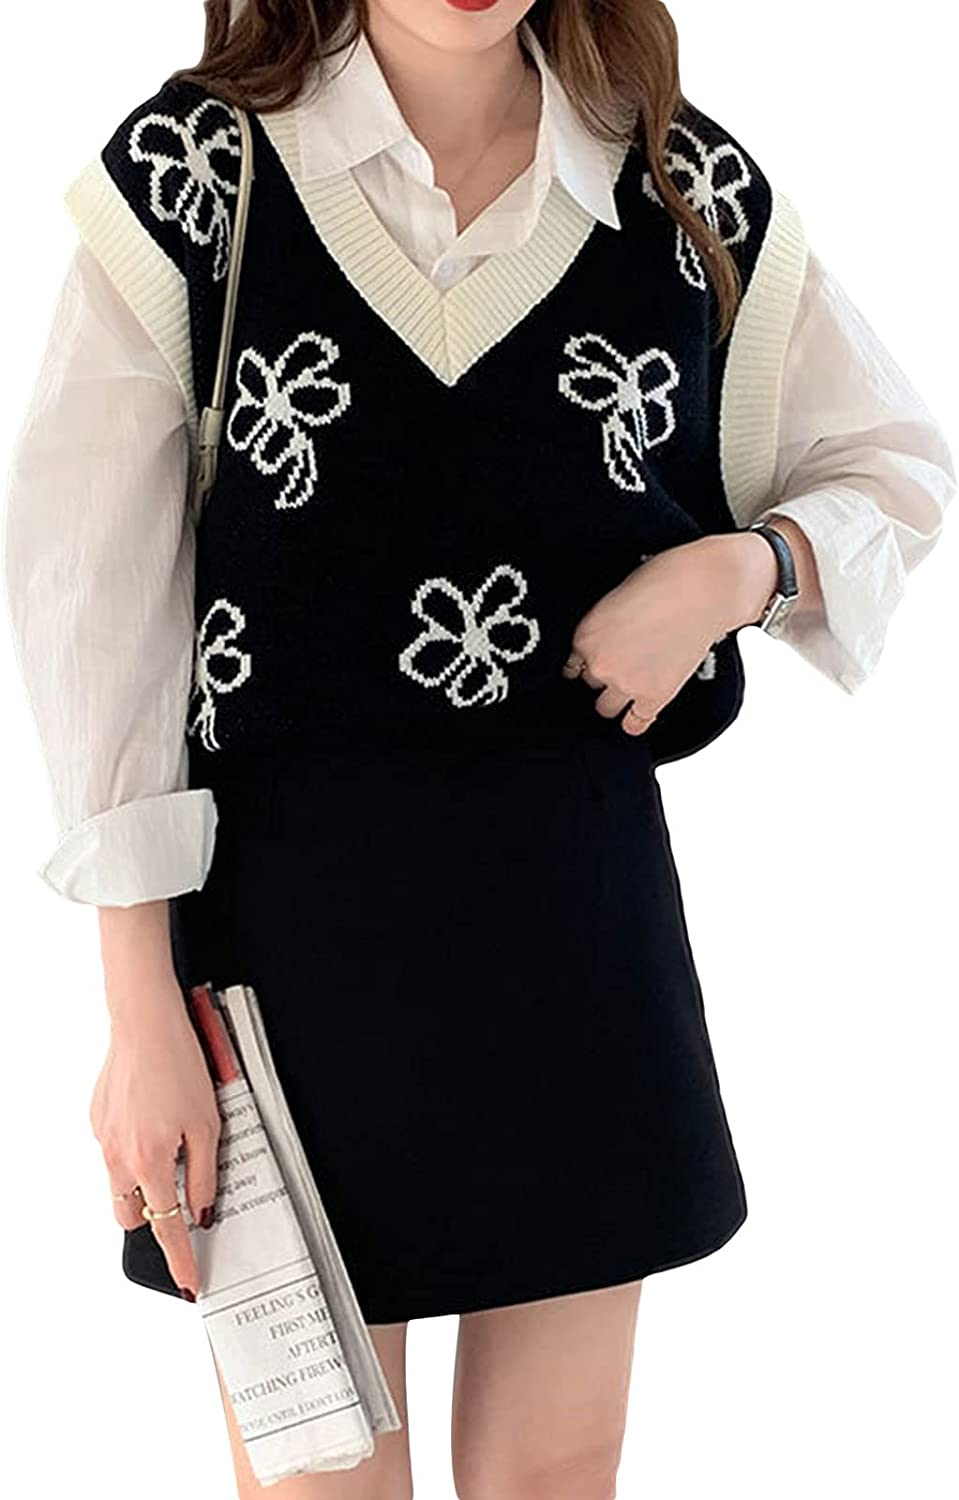 Womens Knitted Sweater Vest Fall Winter Sleeveless Floral Yinyang V Neck/Crew Neck Pullover Sweaters Top Outfit